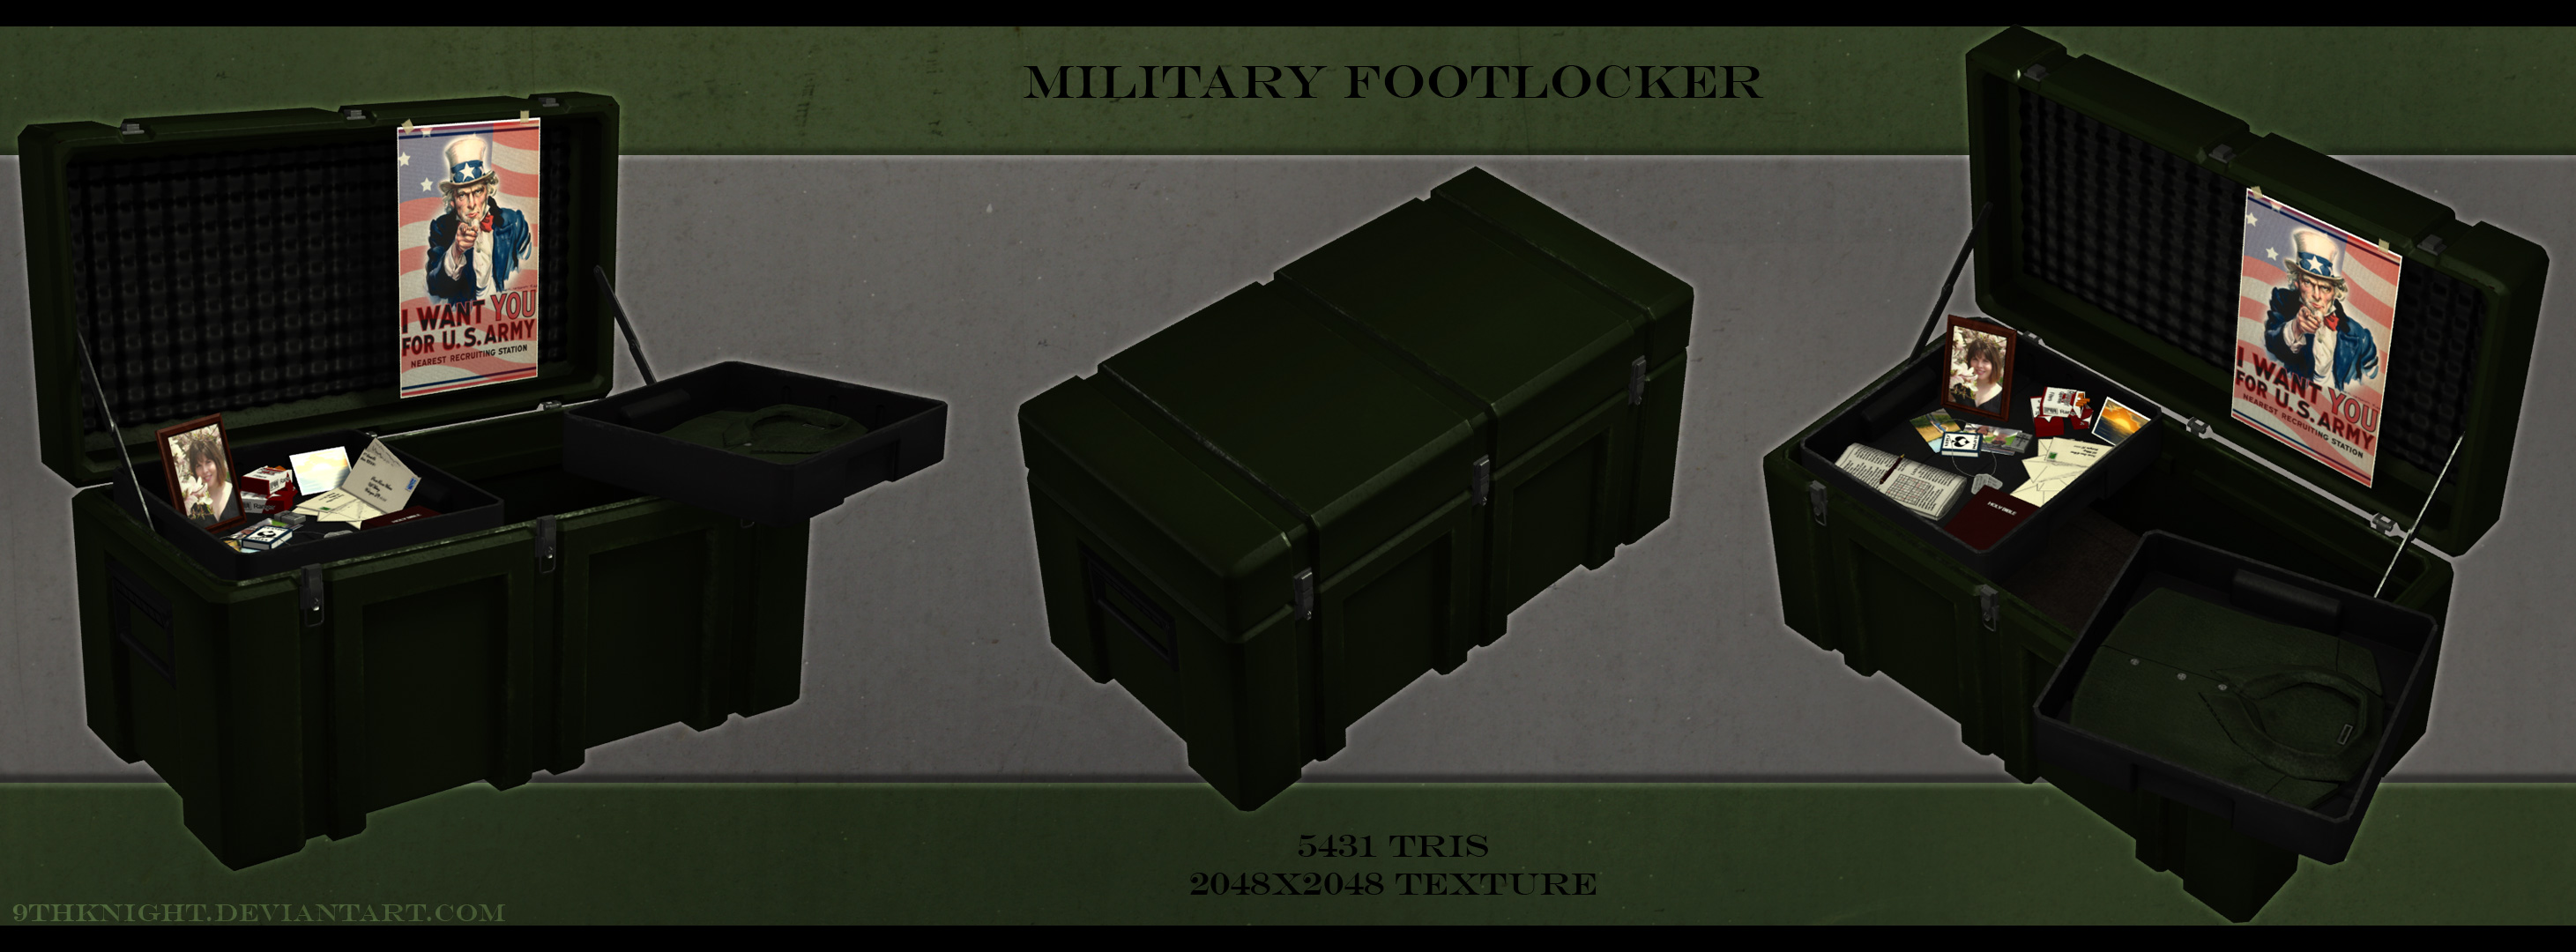 military_footlocker_by_9thknight-d3b5jw8.jpg